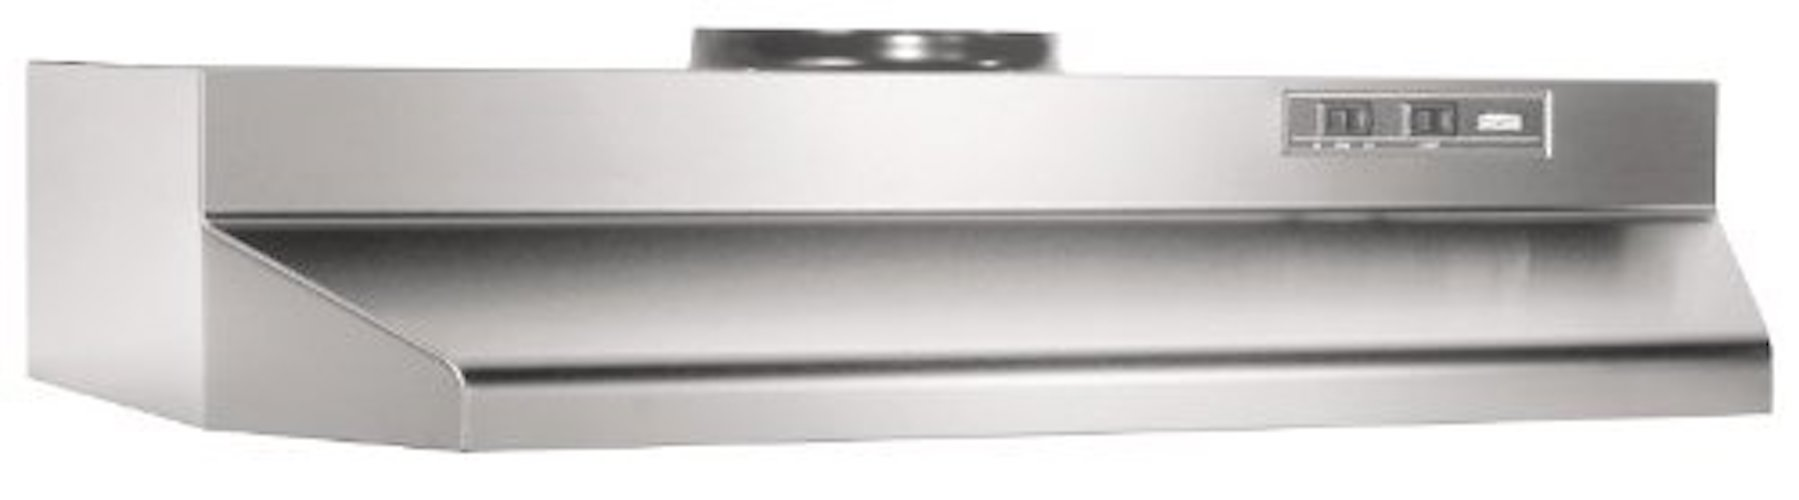 Broan 423604 ADA Capable Under Cabinet Range Hood, 190 CFM 36 Inch, Stainless  Steel